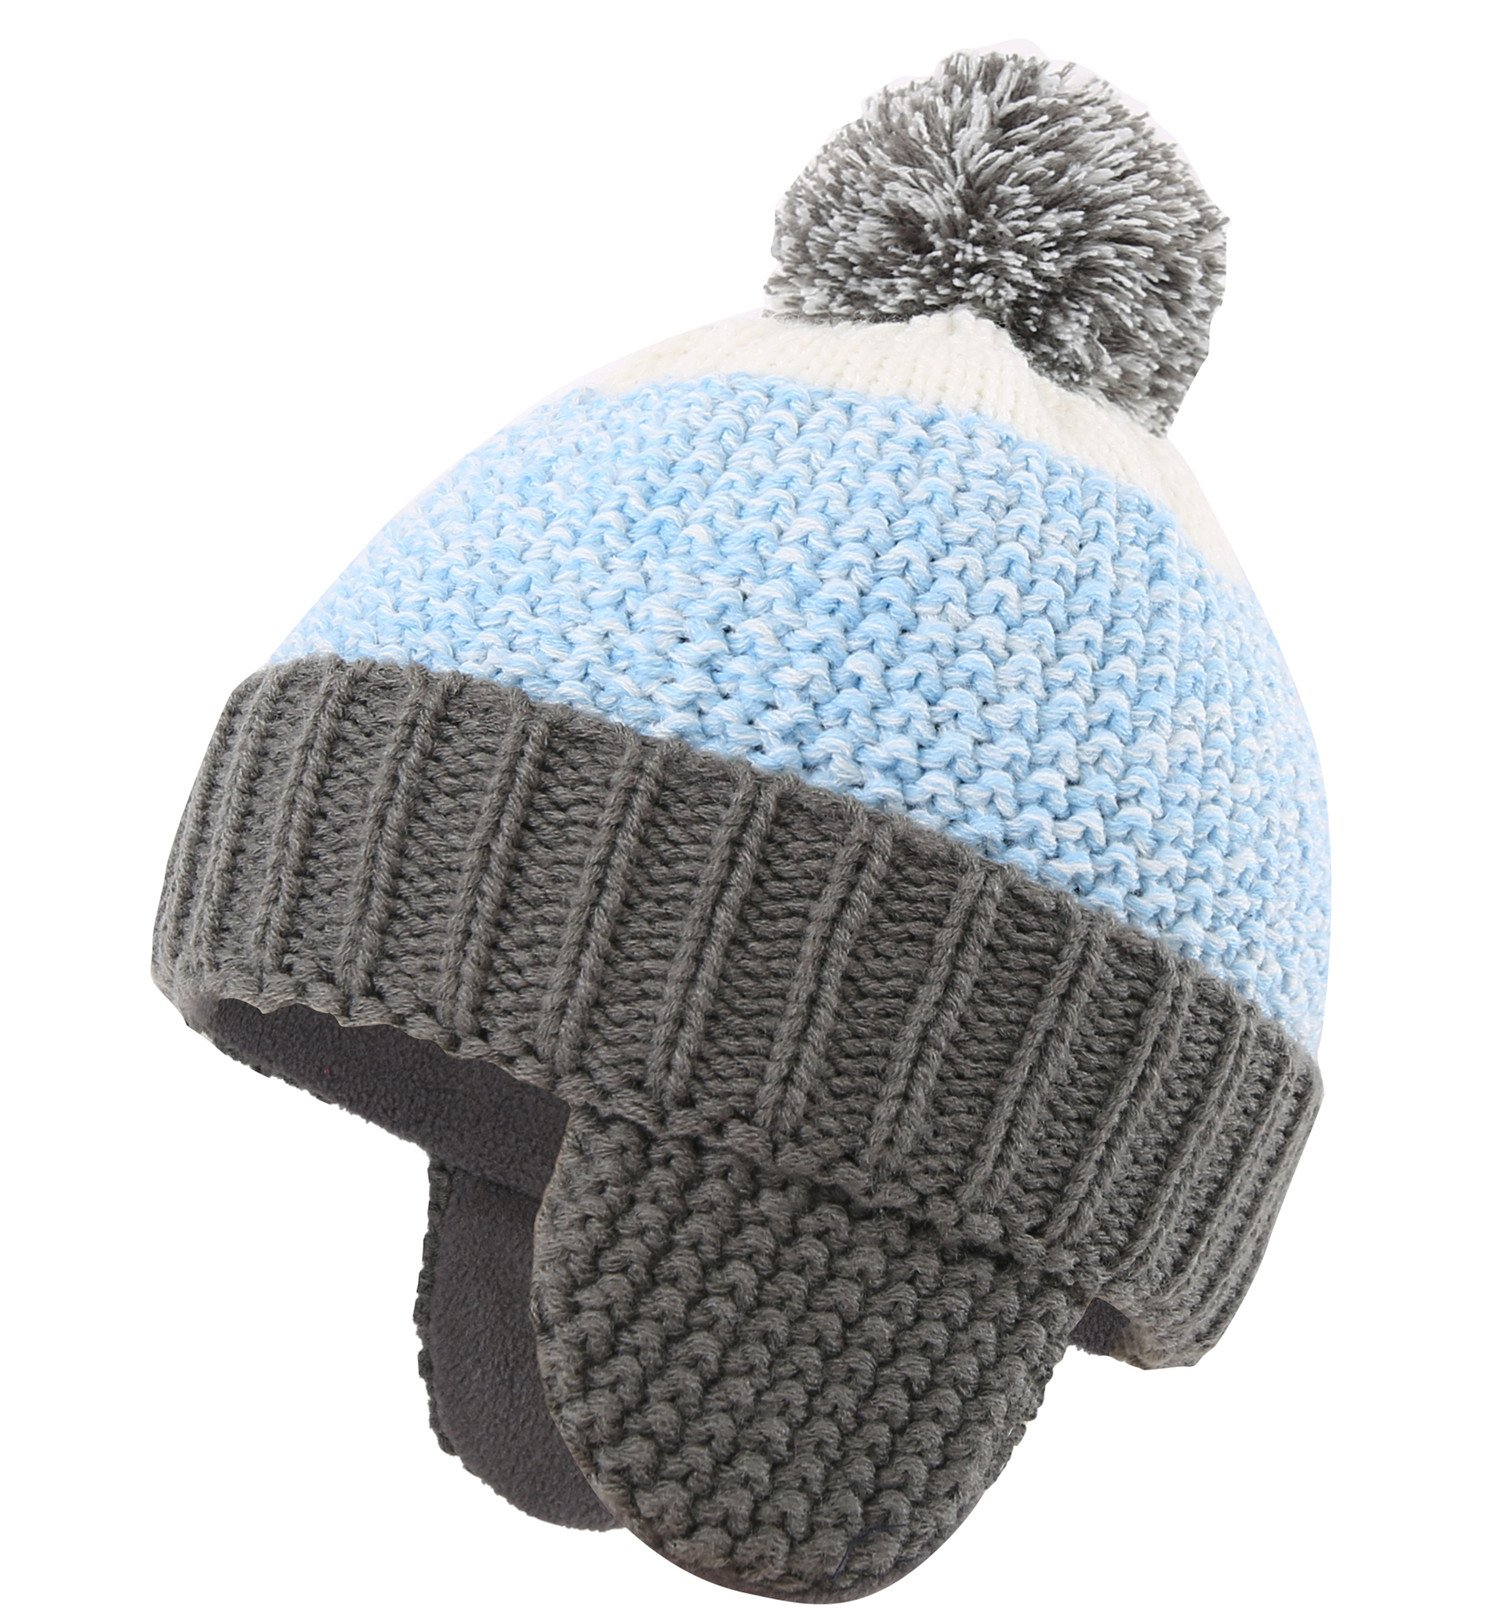 Connectyle Toddler Infant Baby Knit Kids Hat with Earflap Fleece Lined Winter Hats with Pom Beanie Cap Blue,Blue,S:6M-1.5T(17.3''-18.5''Head Girth)